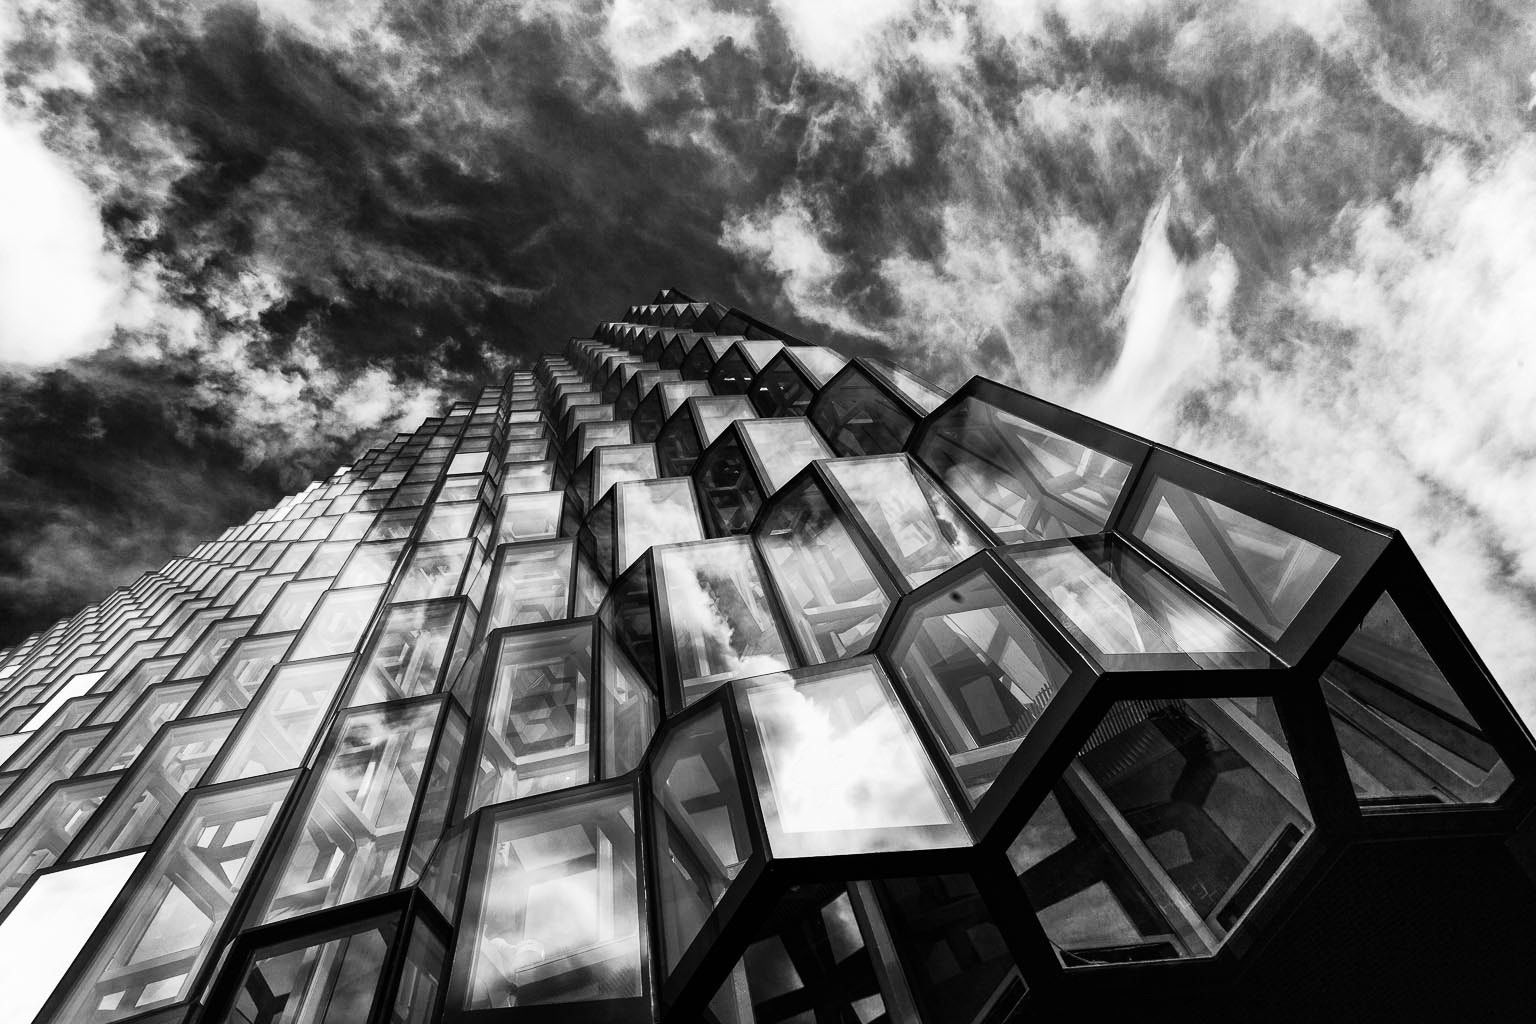 Photograph Harpa, auditorium and Concert Hall, Reykjavik, Iceland by Páll Guðjónsson on 500px